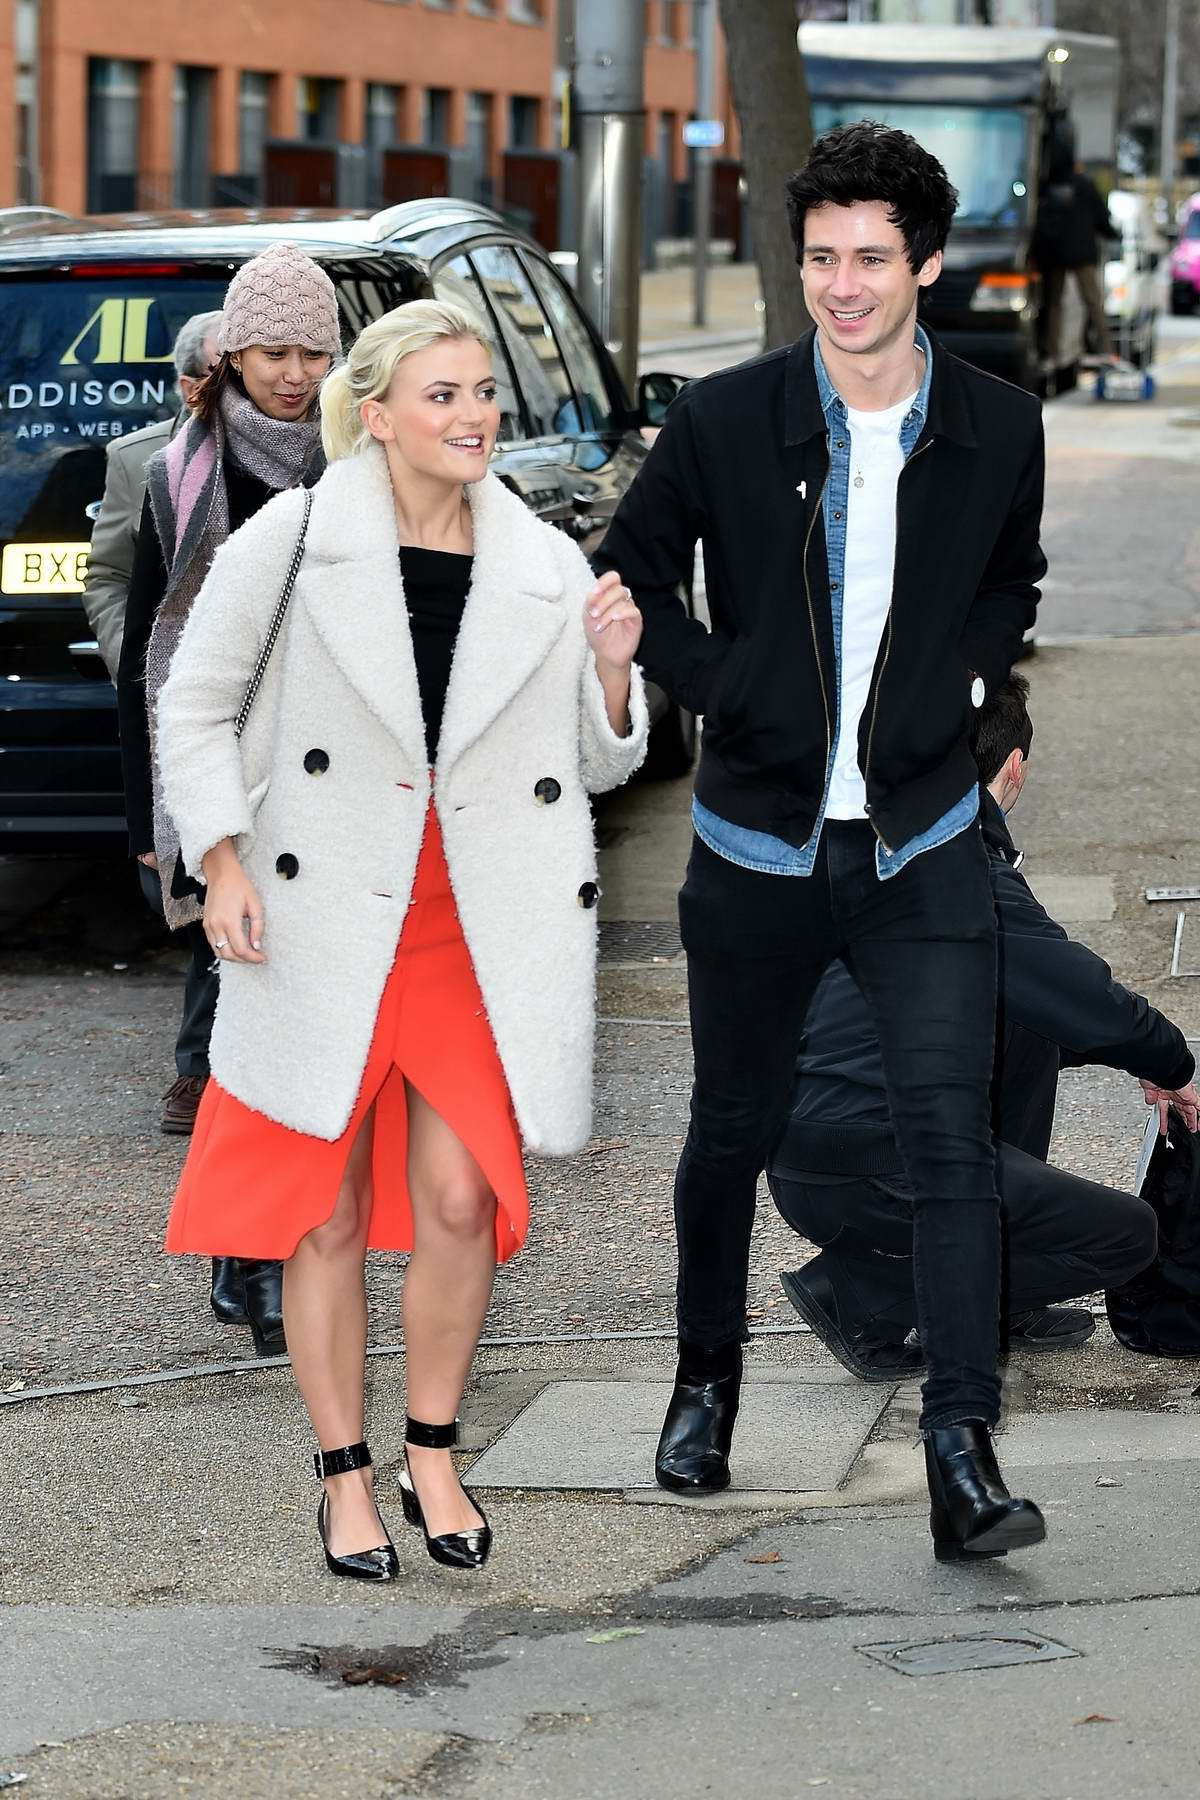 Lucy Fallon And Boyfriend Tom Leech Spotted Outside Itv Studios In London 180118 5